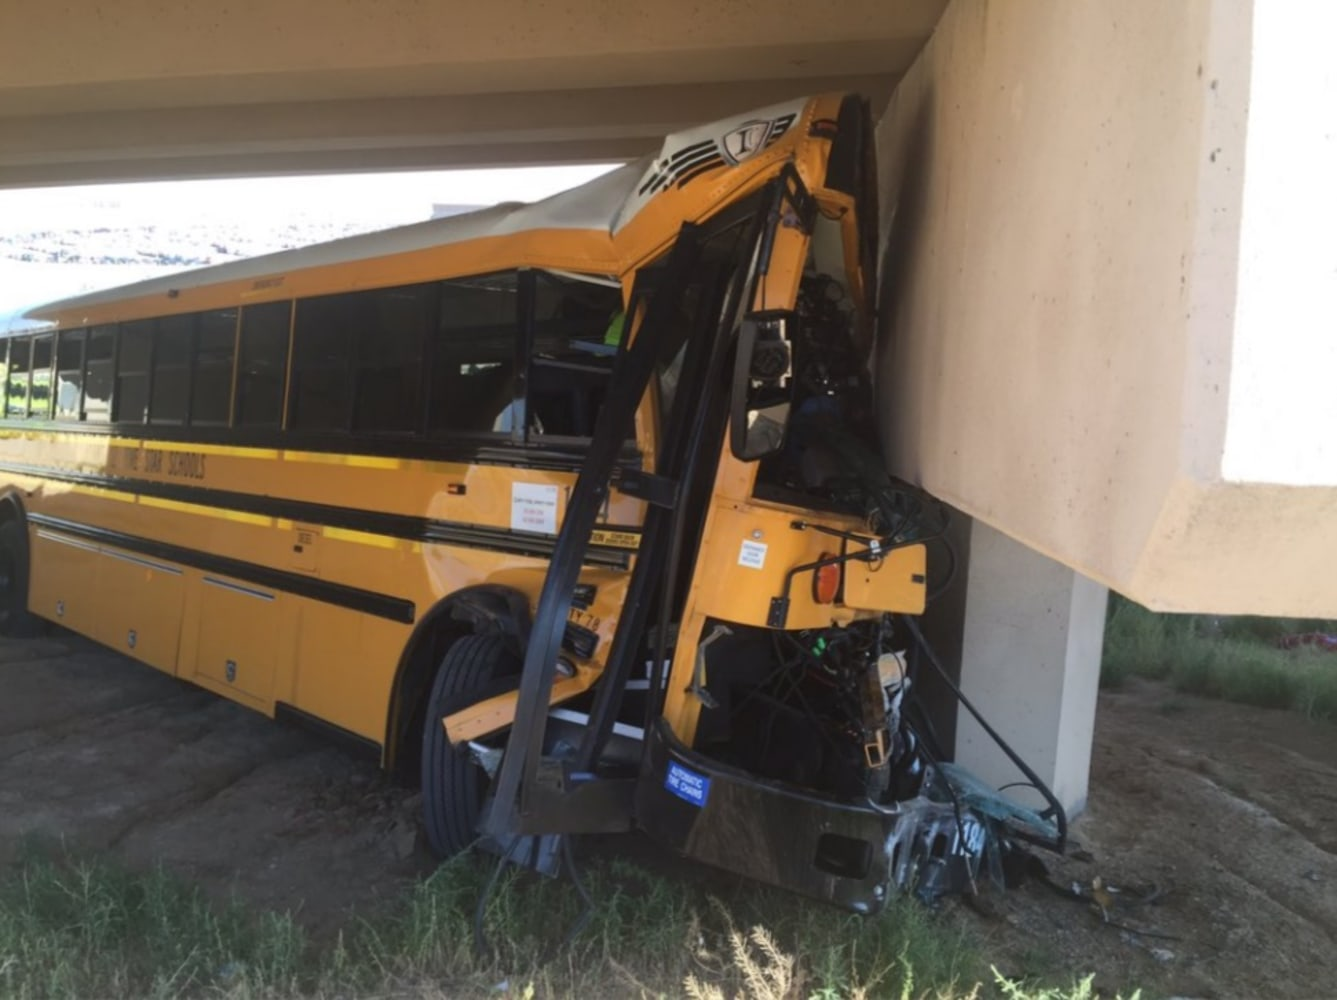 U.S. driver dies, several hurt as school bus carrying football team crashes